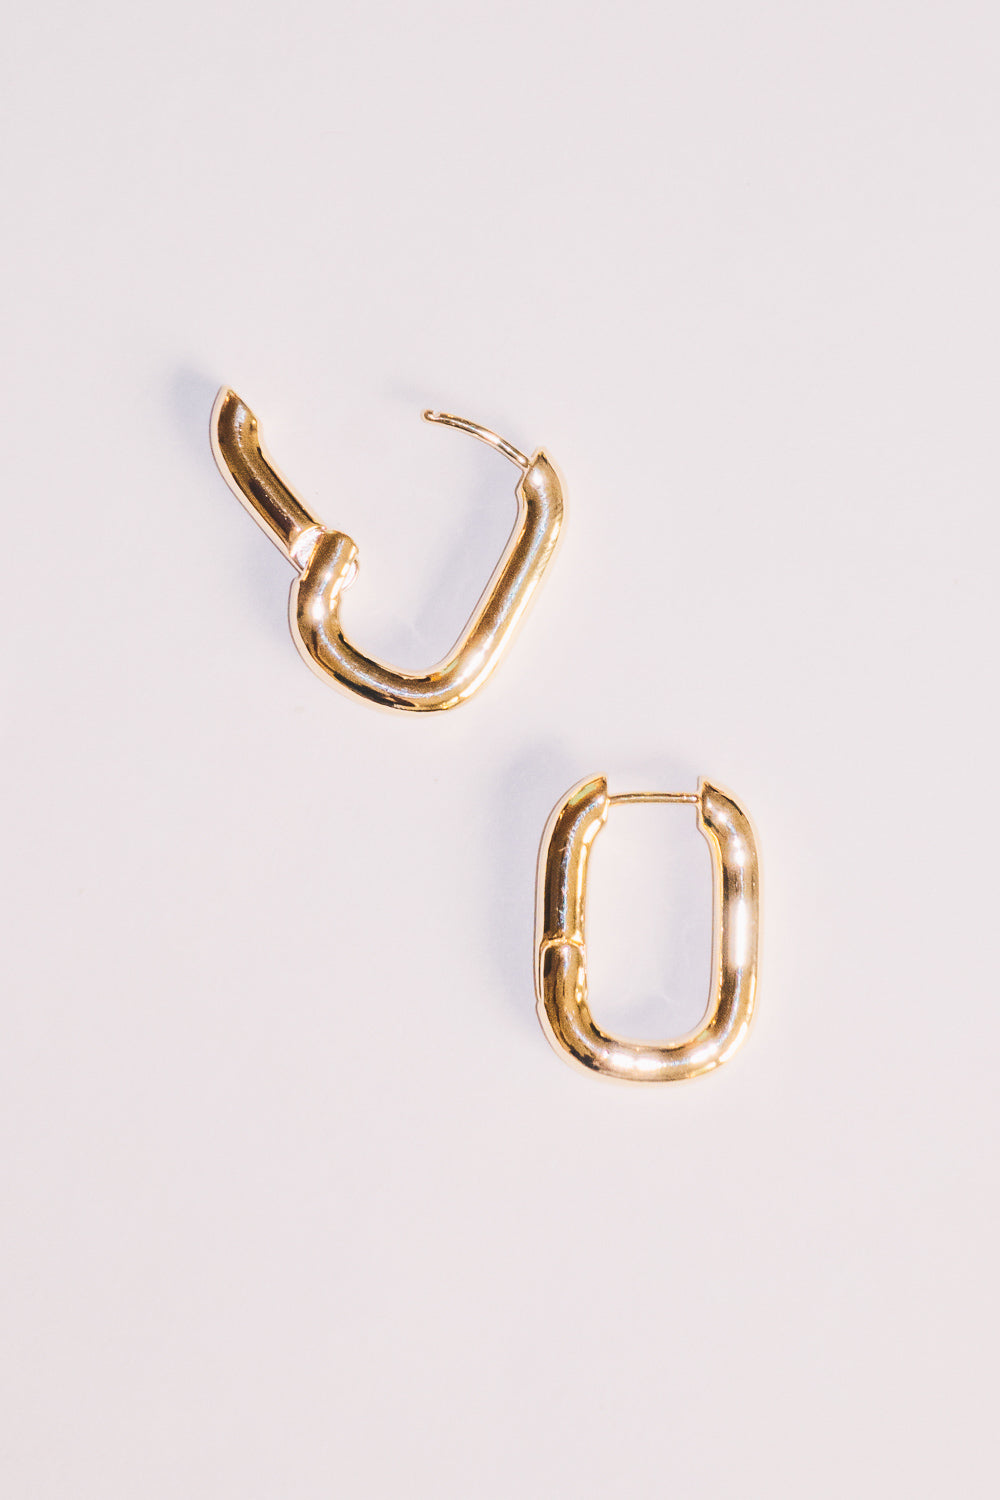 gold huggie hoop earrings with opening